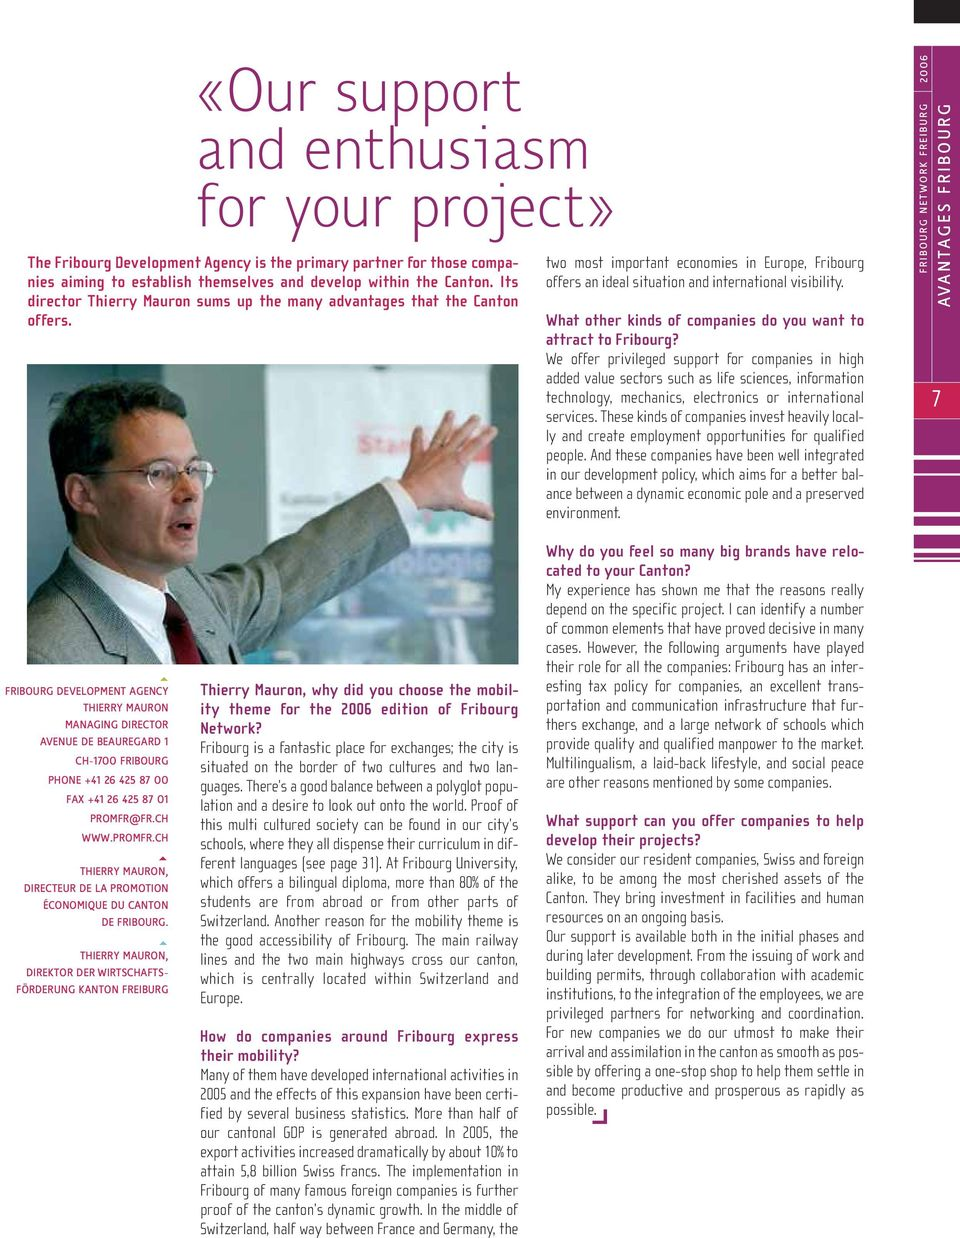 What other kinds of companies do you want to attract to Fribourg?